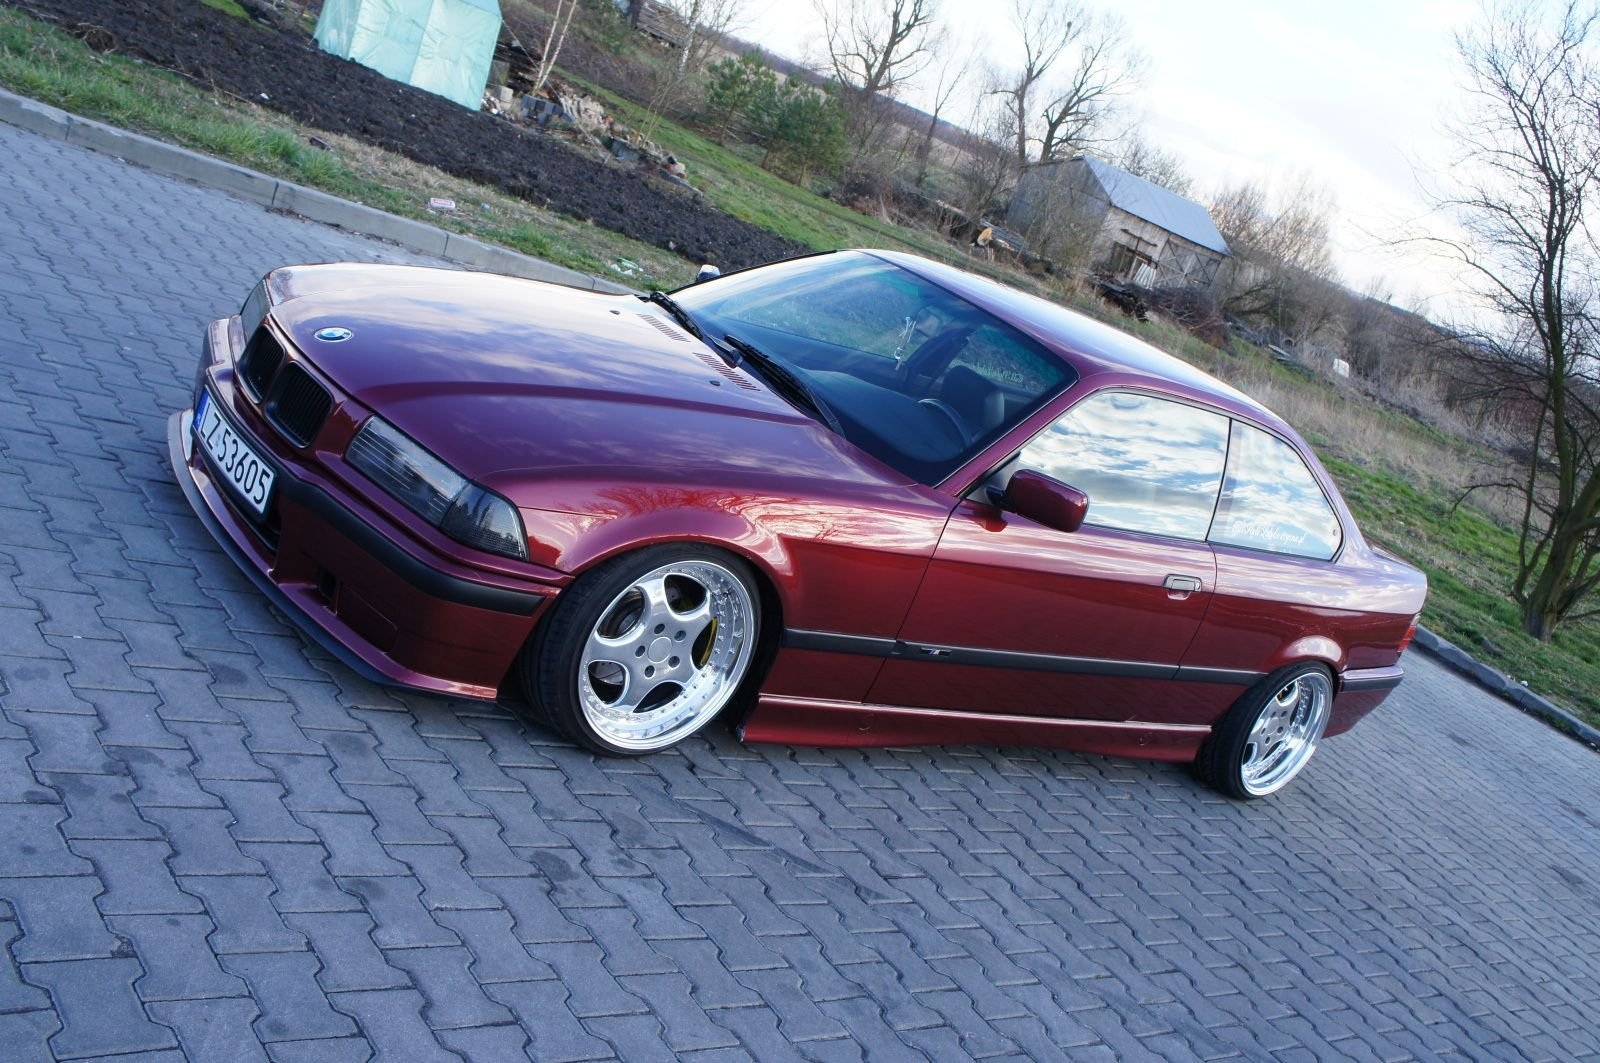 Latest Calypsorot Bmw E36 Coupé On Cult Classic Rh Zw1 Wheels Free Download